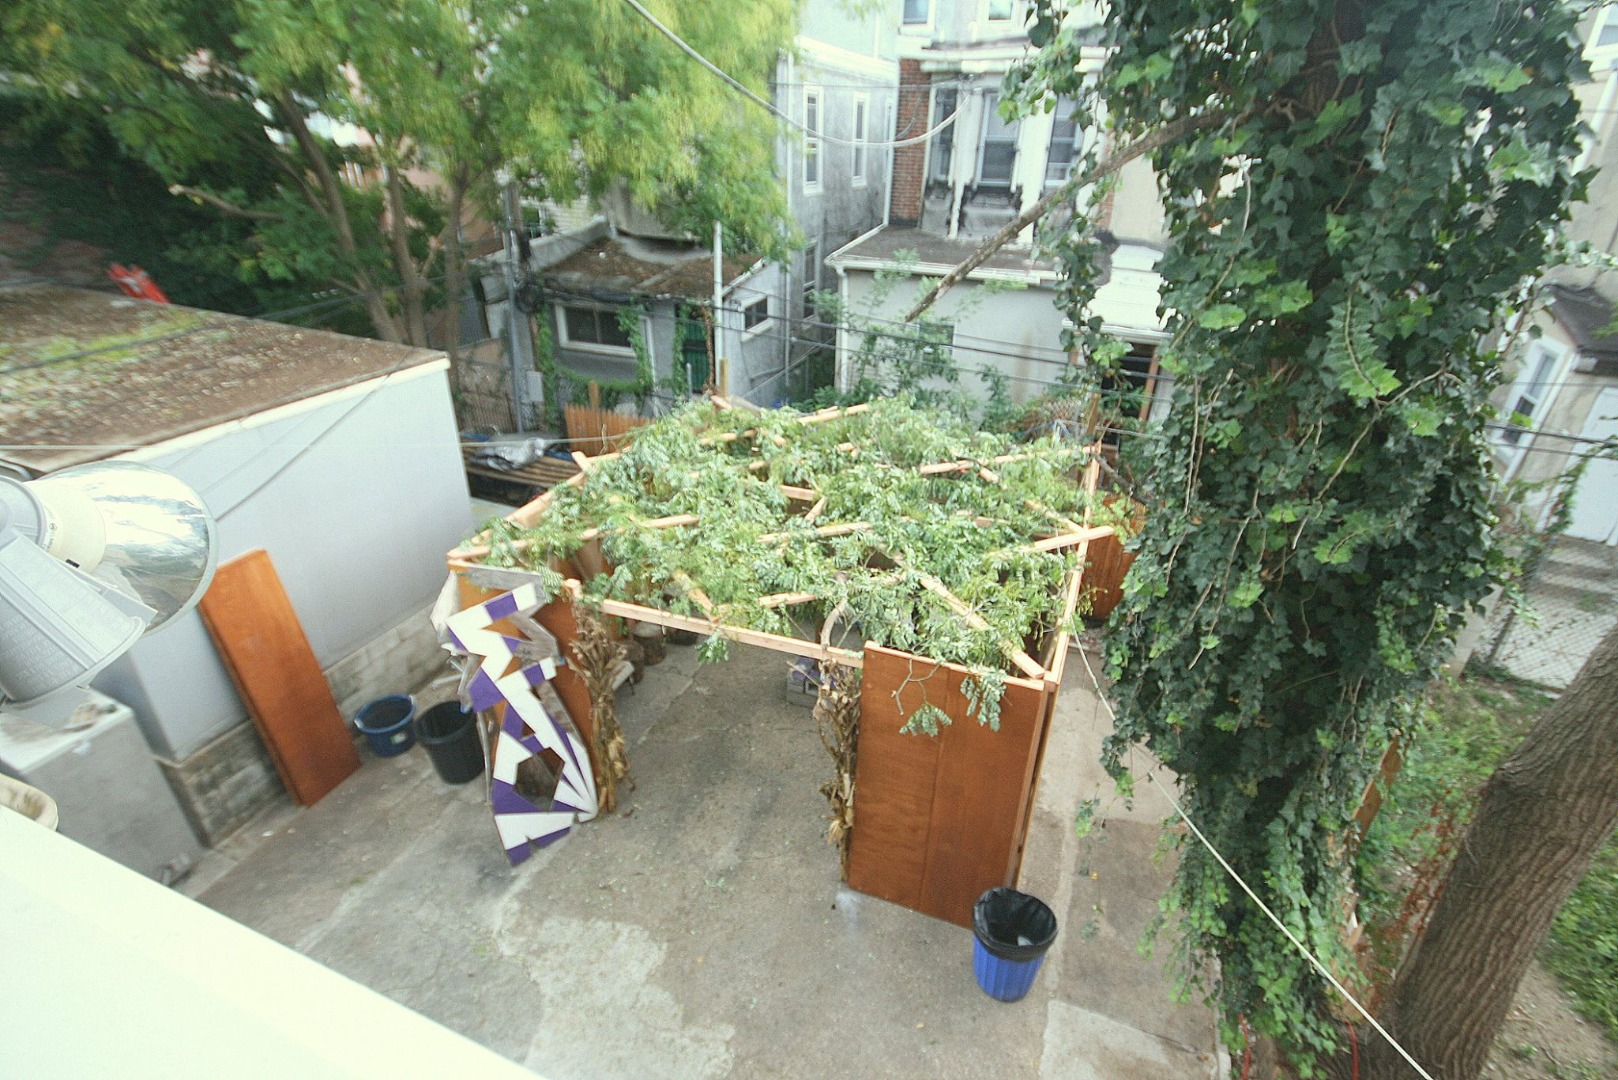 Picture of Succah, a Temporary Shelter Covered in Natural Materials, Built Near a Synagogue or House and Used Especially for Meals During the Jewish Festival of Succoth.